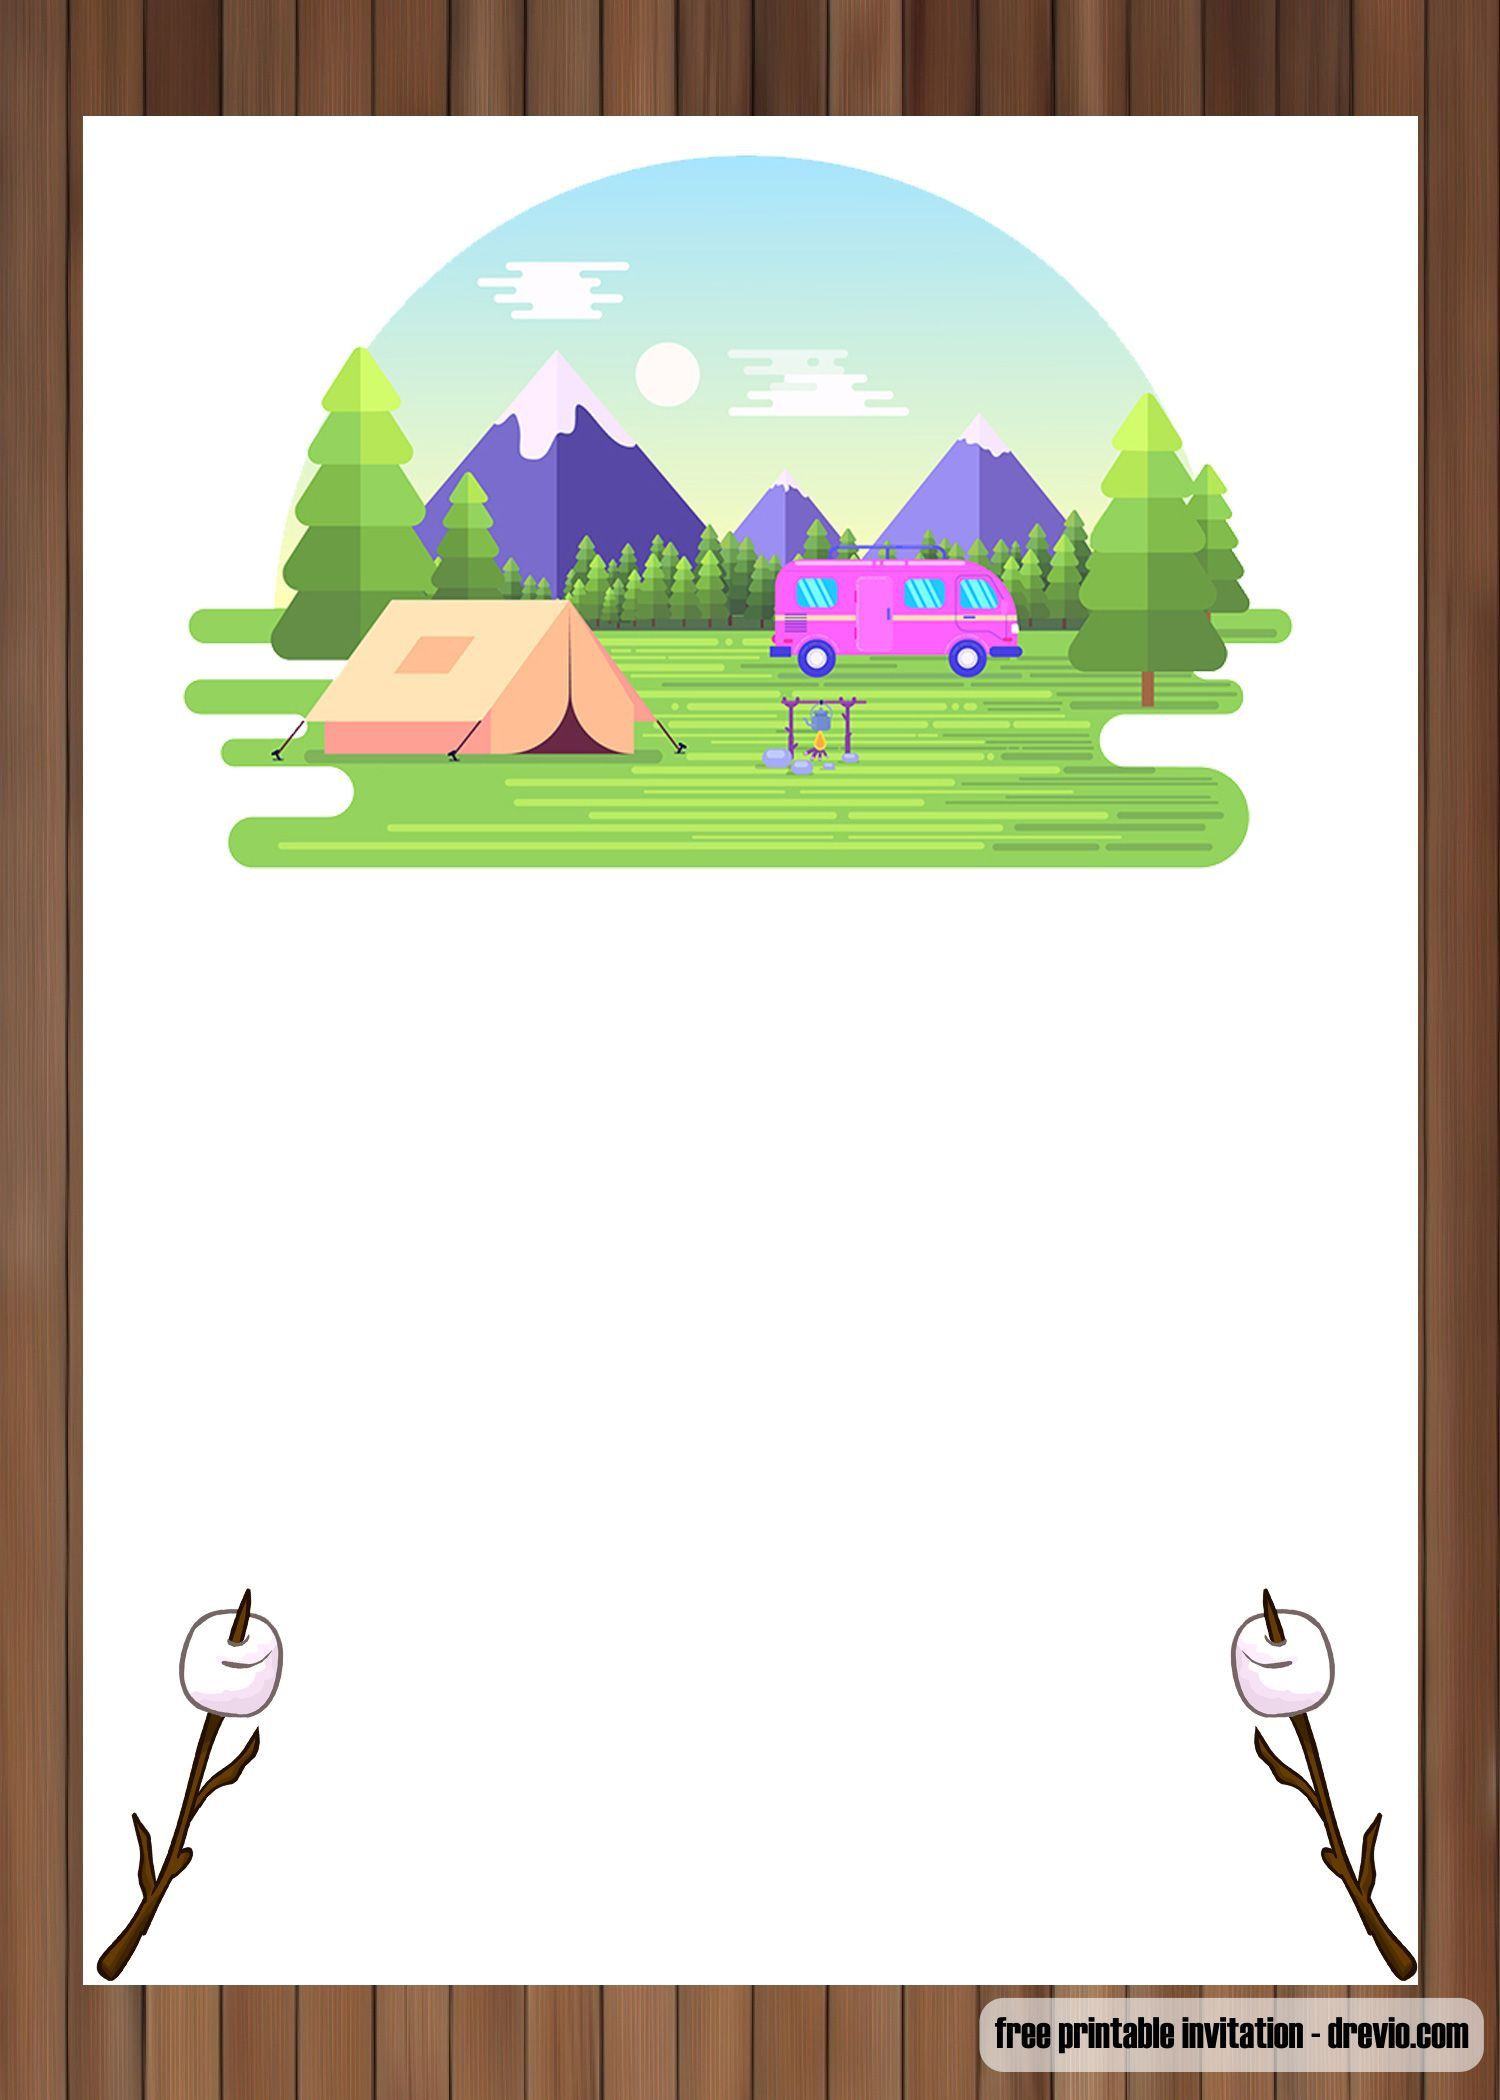 002 Phenomenal Camping Invitation Template Free Concept  Party BirthdayFull